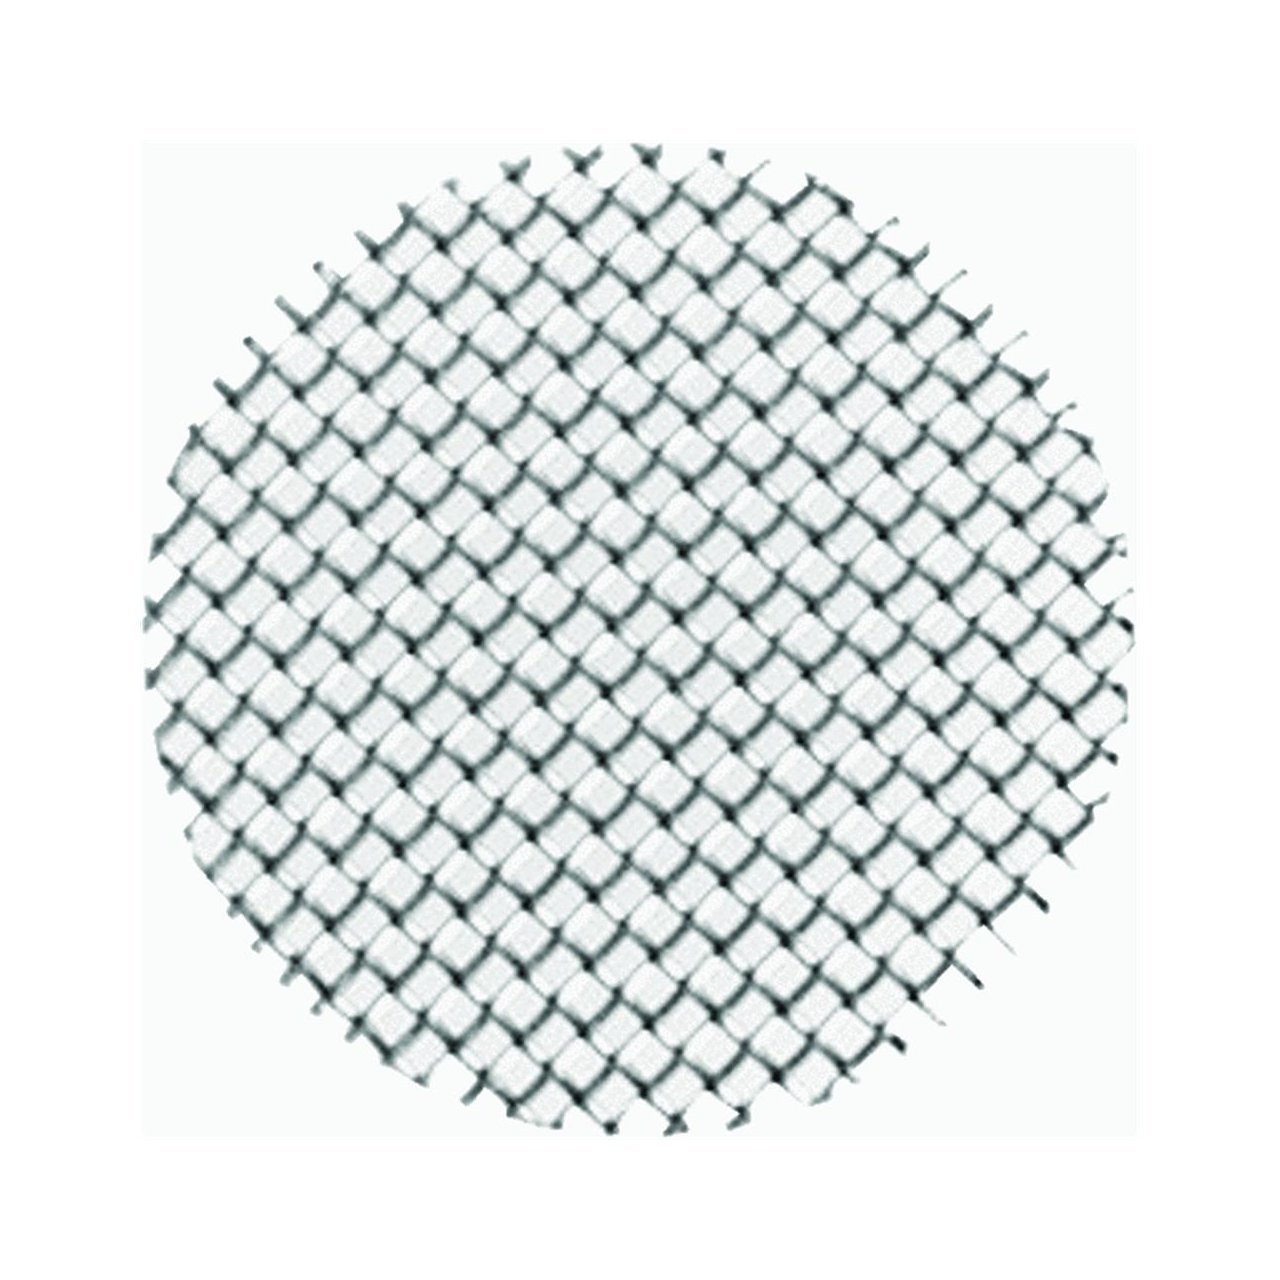 Danco 36162W 13/16 Aerator Screen, Pack of 20 - - Amazon.com